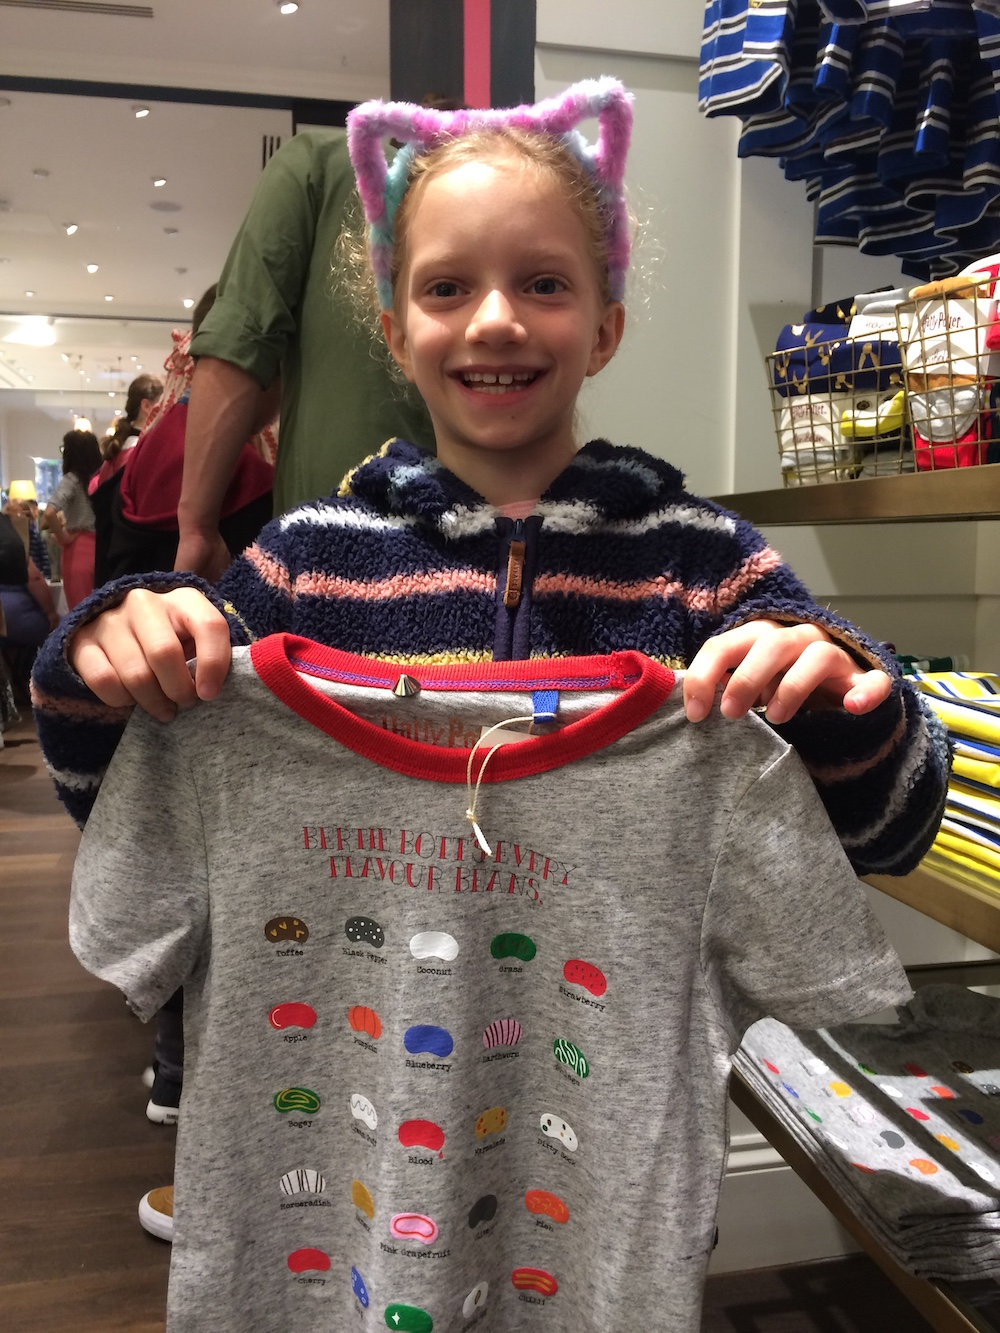 This Bertie Bott's Every Flavour Beans T-shirt is available in sizes 2–3 years to 11–12 years and costs £18.